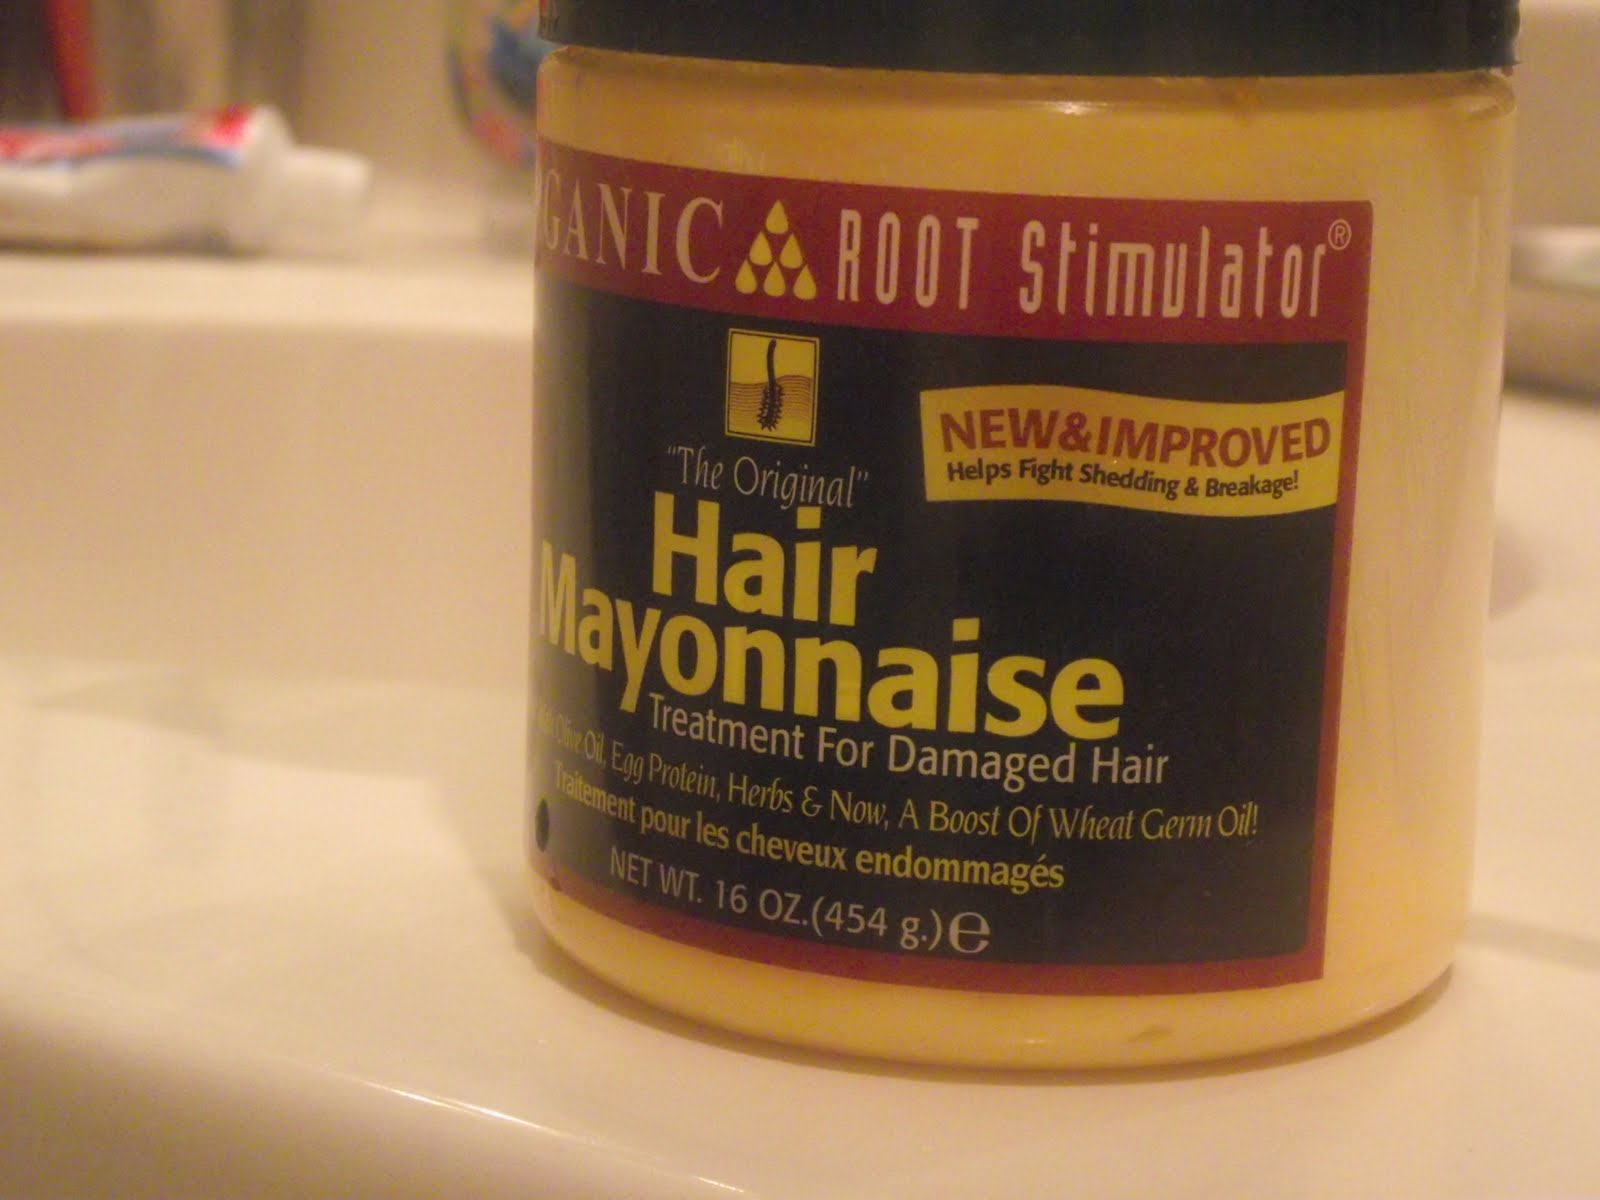 Hair Mayonnaise?